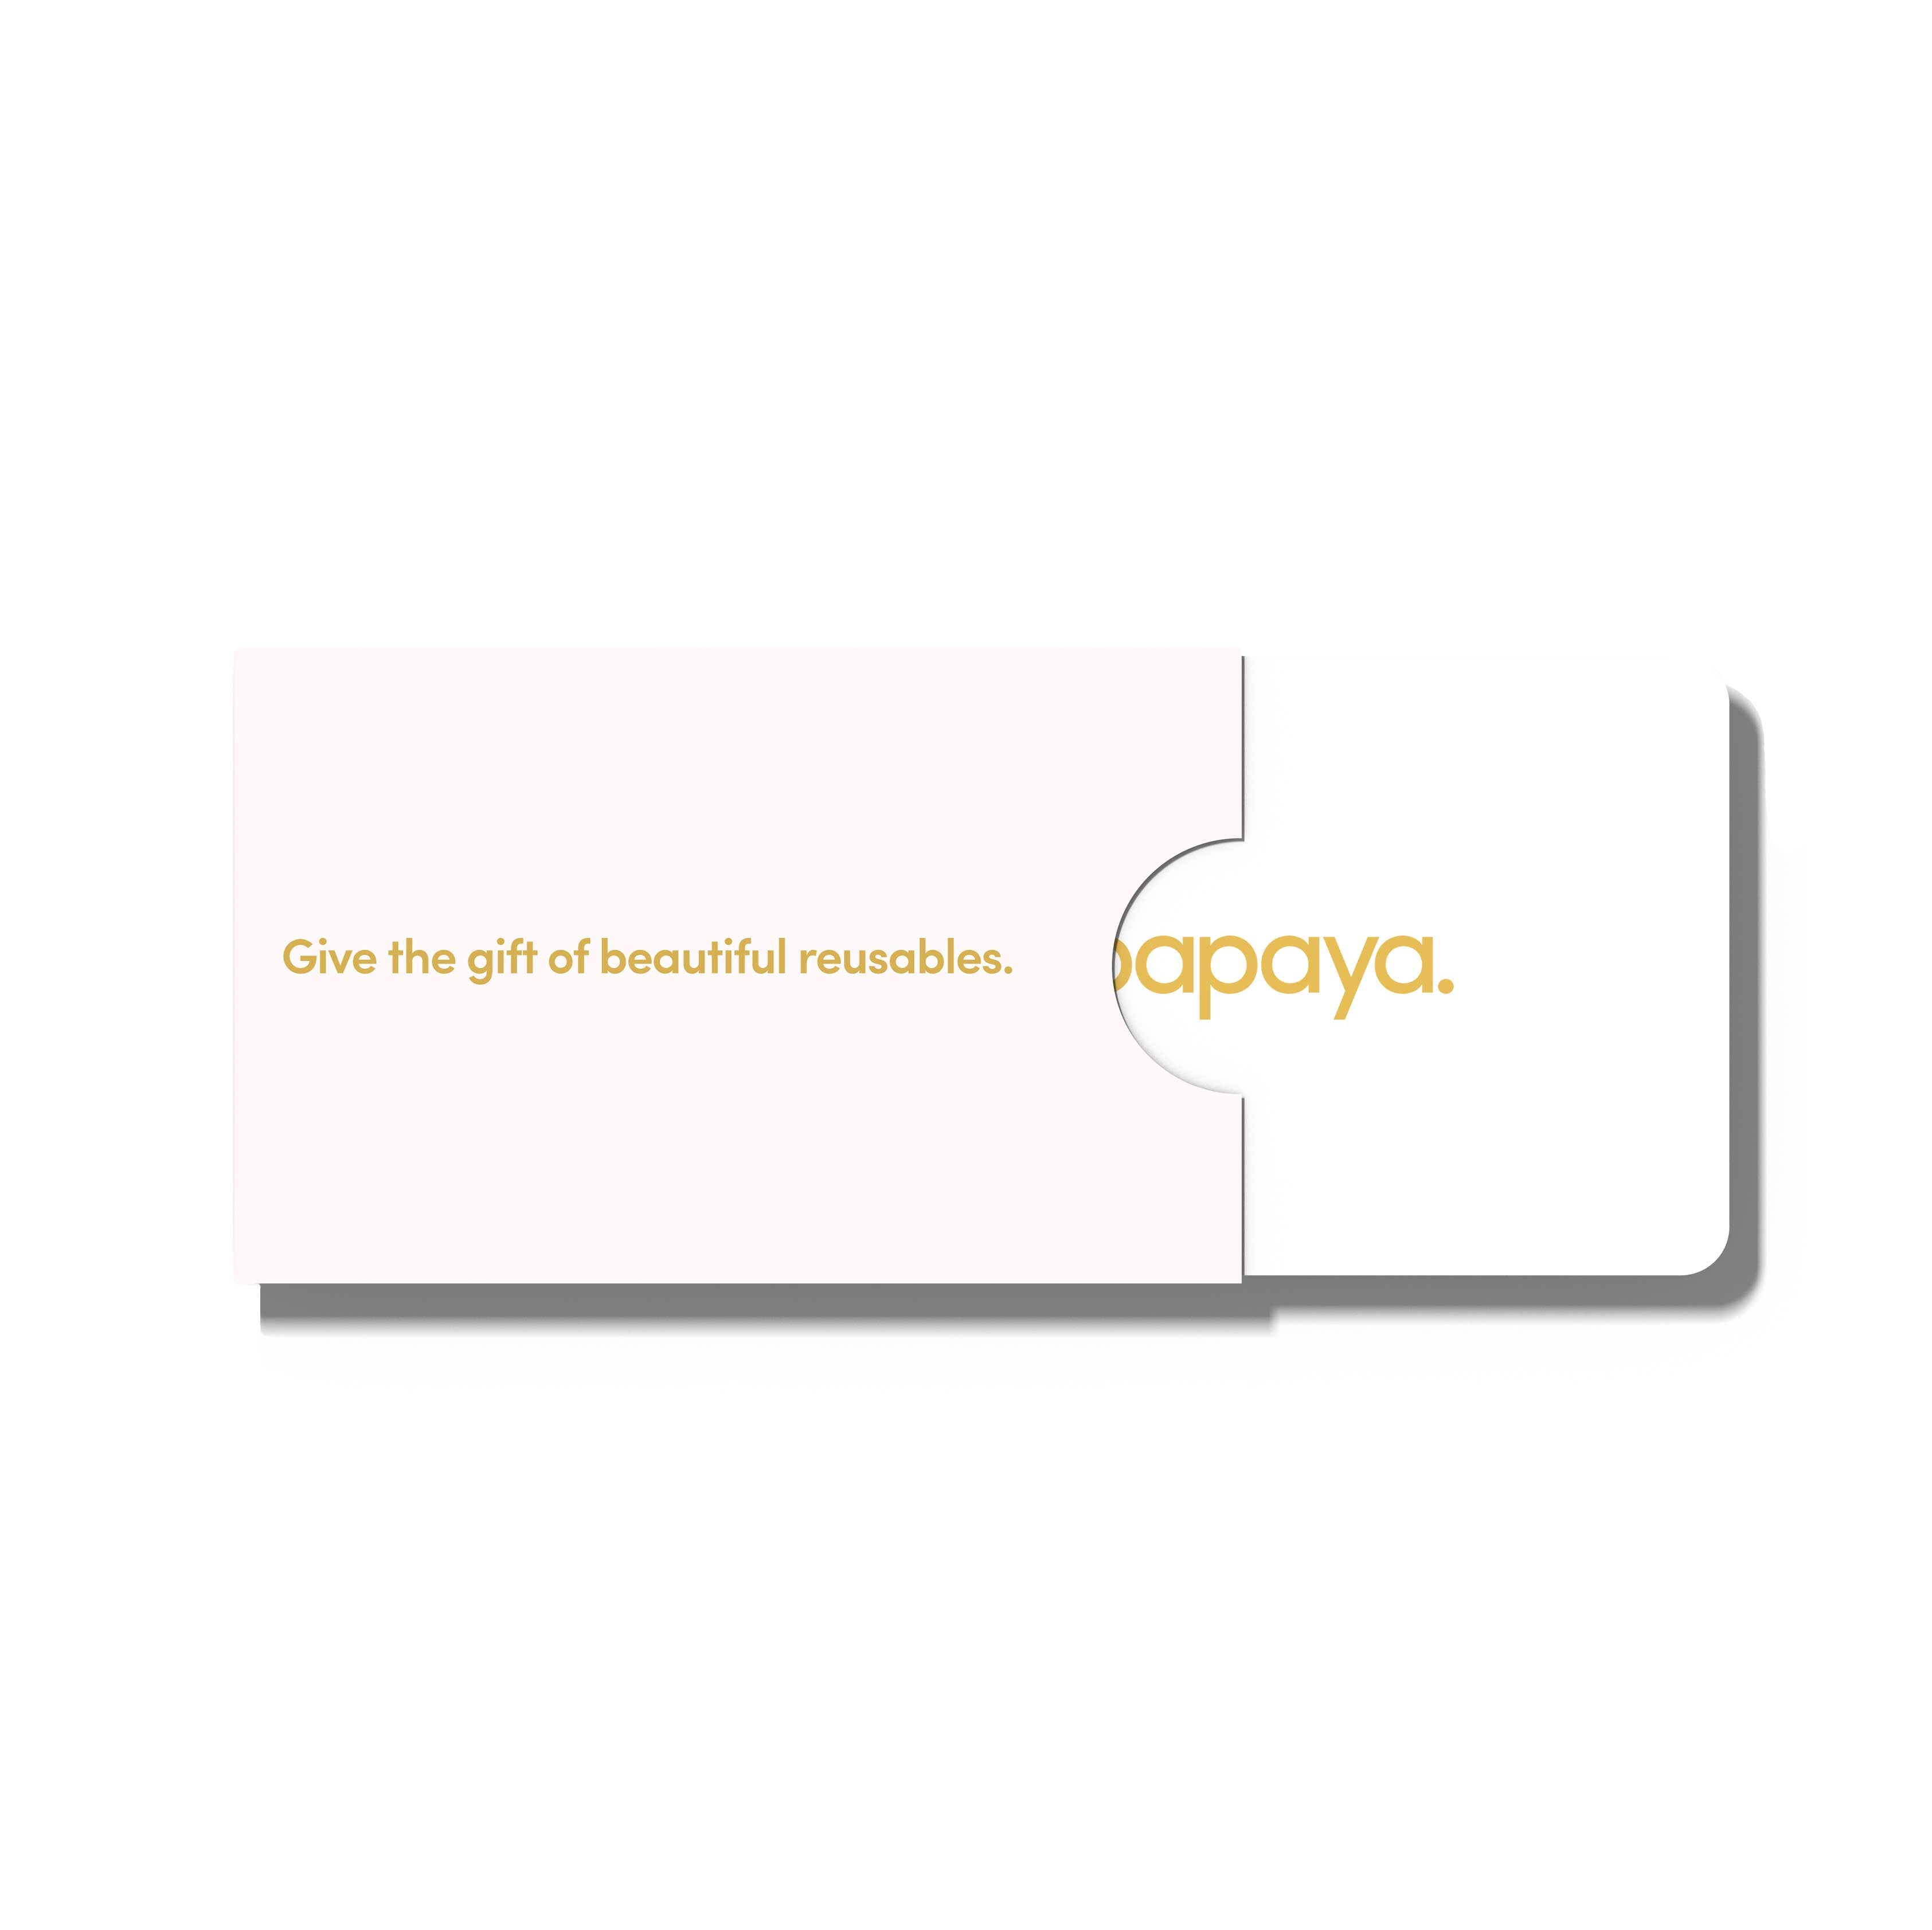 Papaya gift card in card holder that says give the gift of beautiful reusables